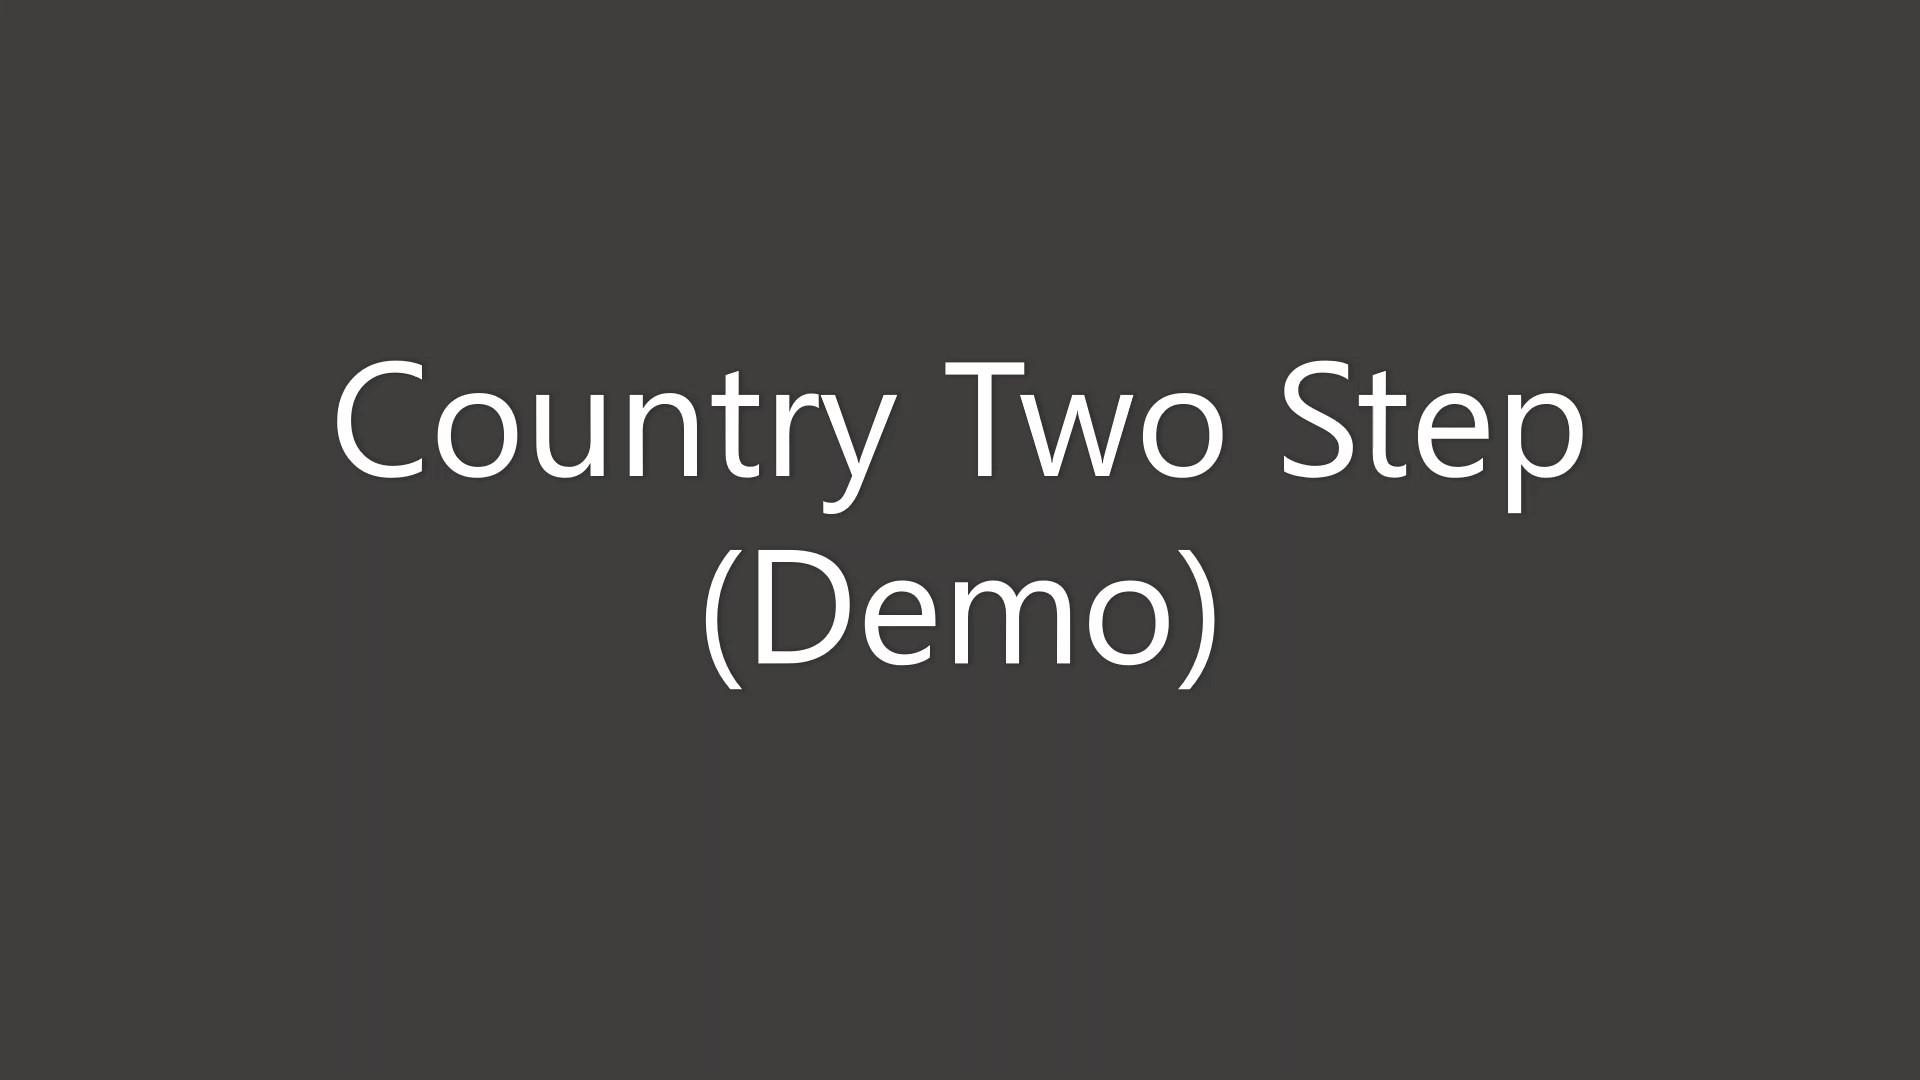 Country Two Step Demo